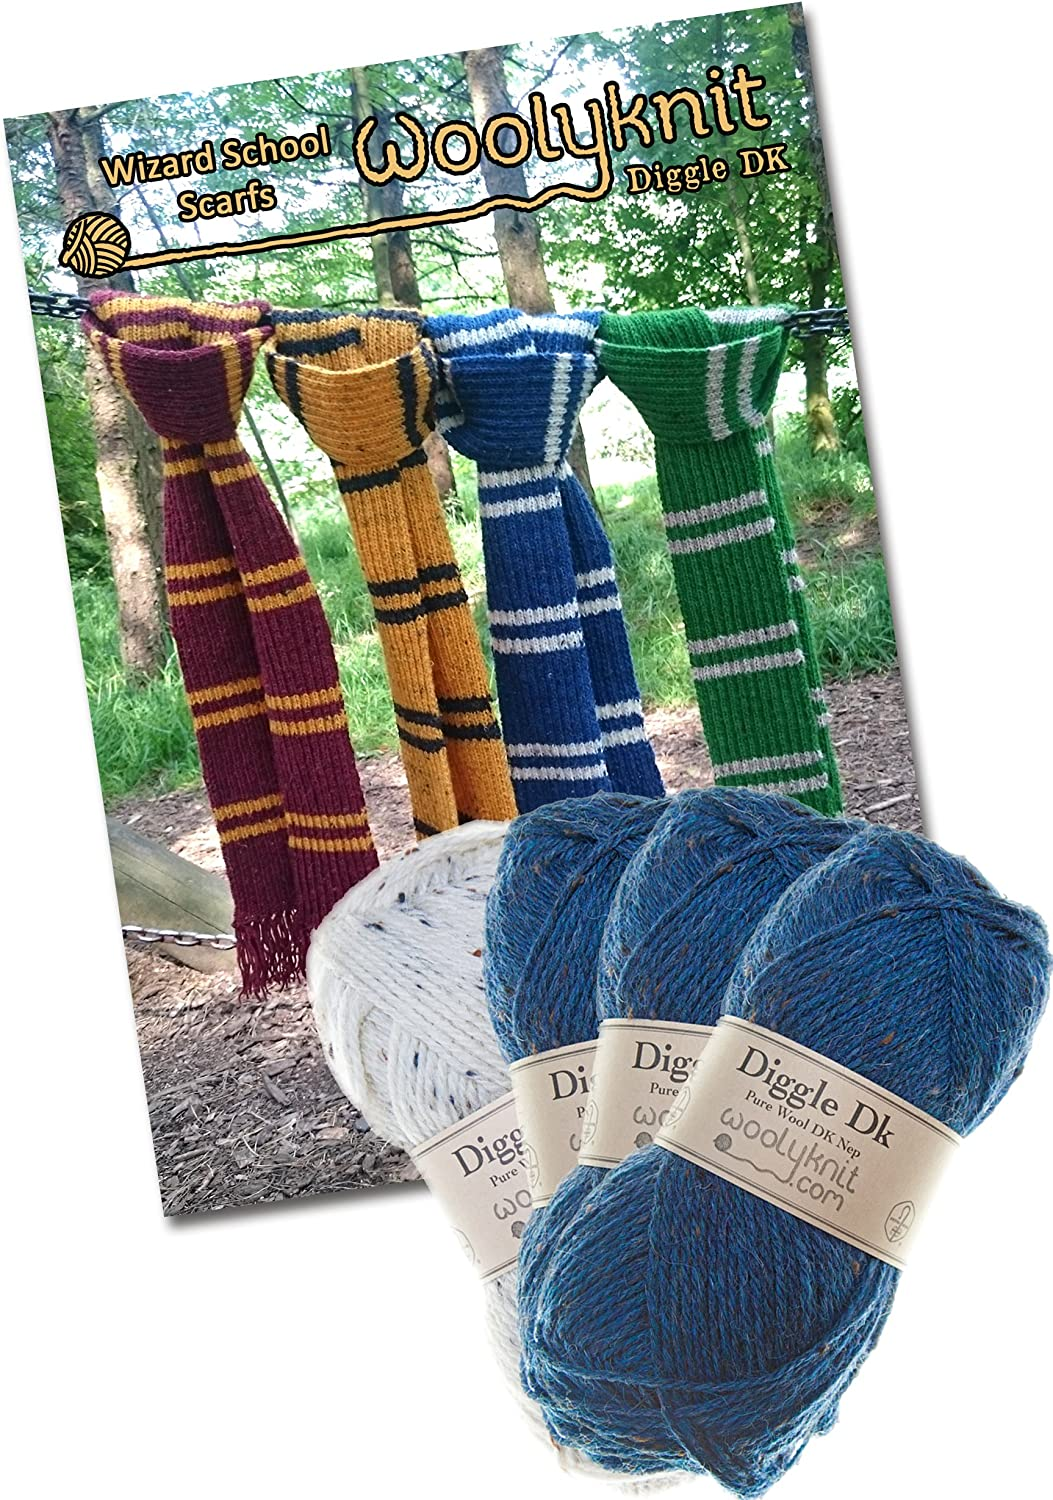 Wizard School Scarf Knitting Bundle Pack. Wool and Knitting Pattern Provided! (Blue)